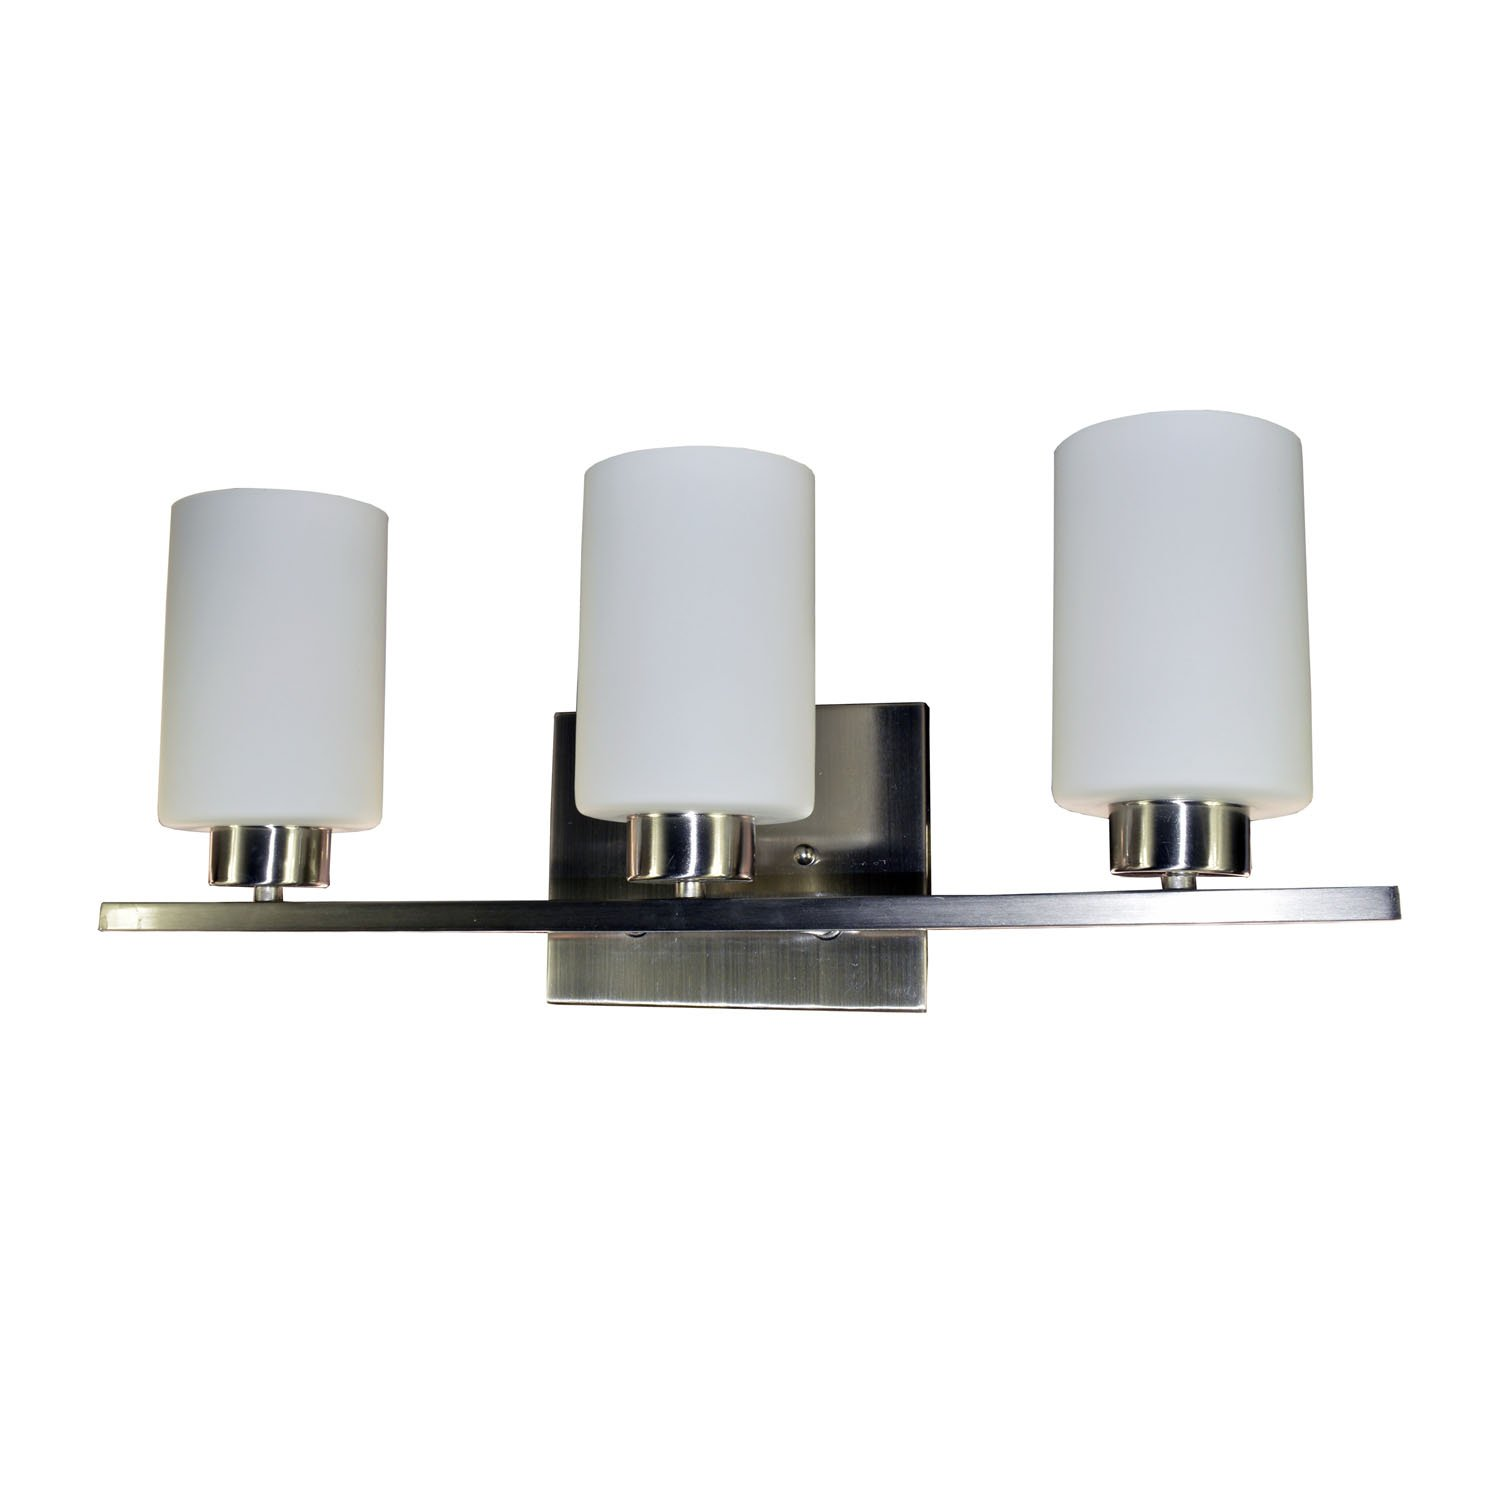 HomeSelects 7530 3-Light Vanity Light, Brushed Nickel with Opal Glass, 5.5 Lx22 Wx8 H